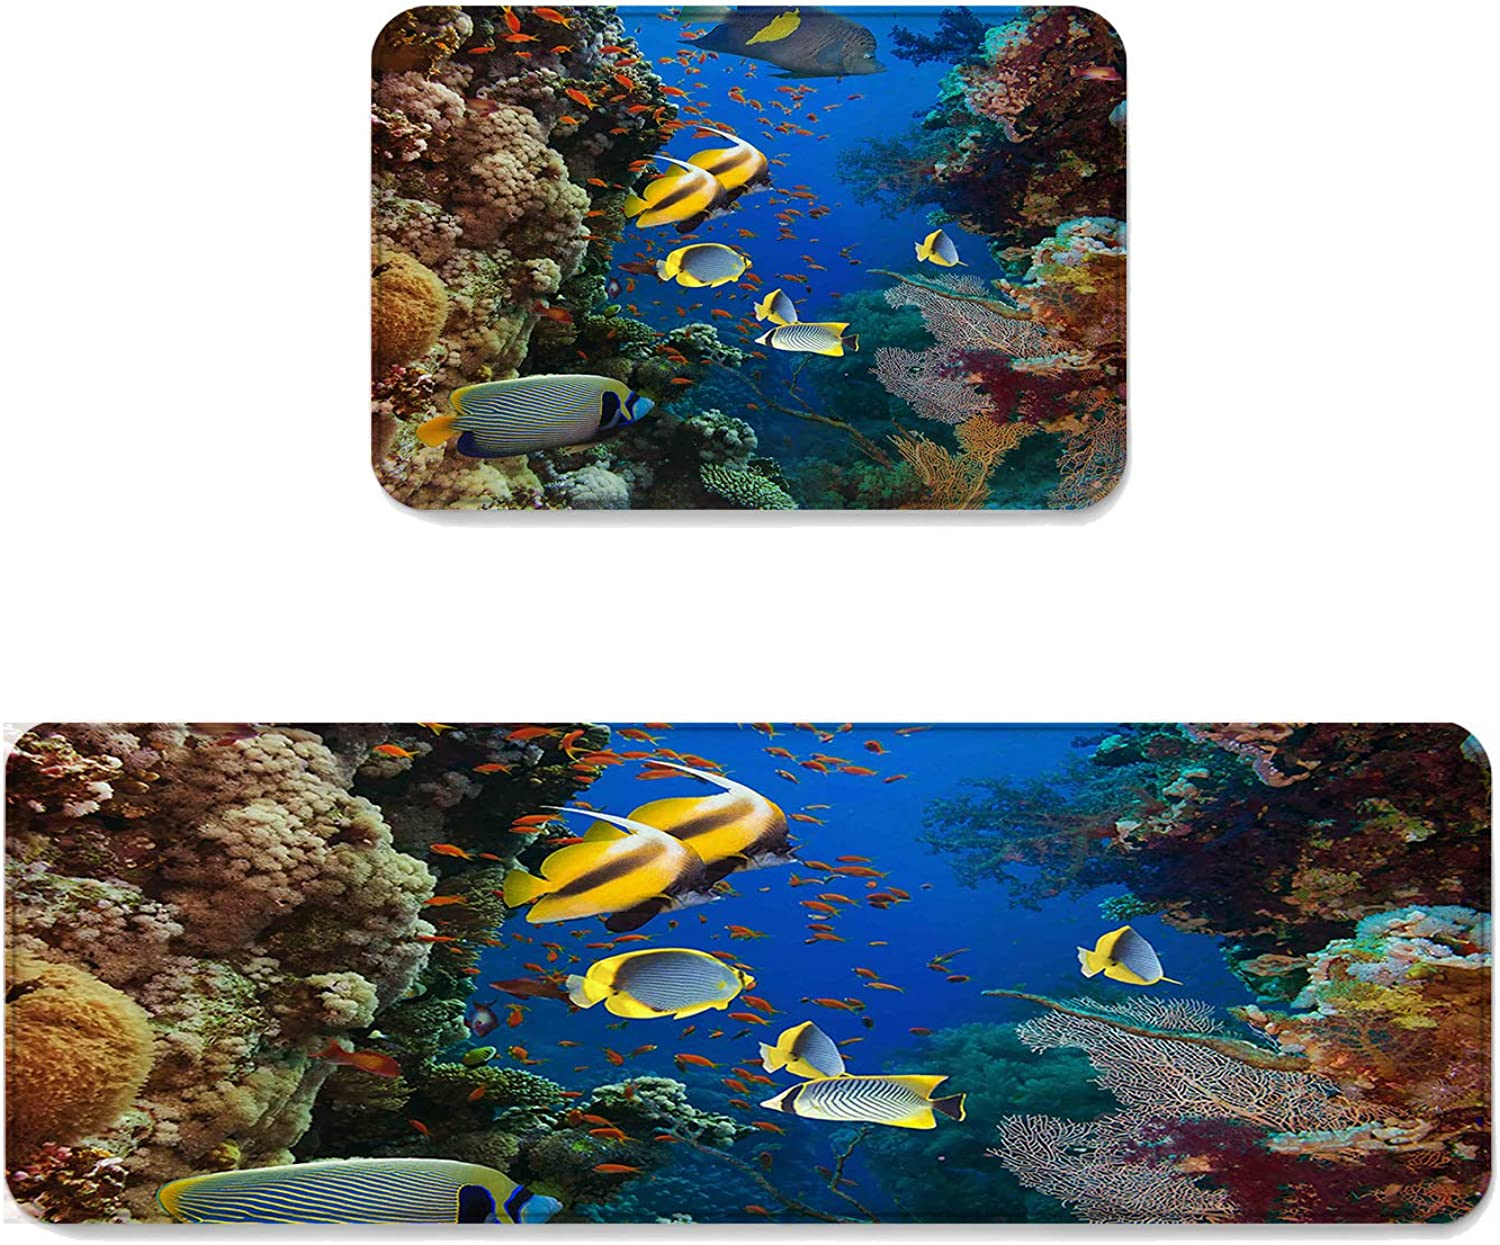 Fantasy Star Kitchen Rug Sets 2 Piece Floor Mats Non-Slip Rubber Backing Area Rugs Coral Reef Tropical Fish Doormat Washable Carpet Inside Door Mat Pad Sets (19.7  x 31.5 +19.7  x 47.2 )